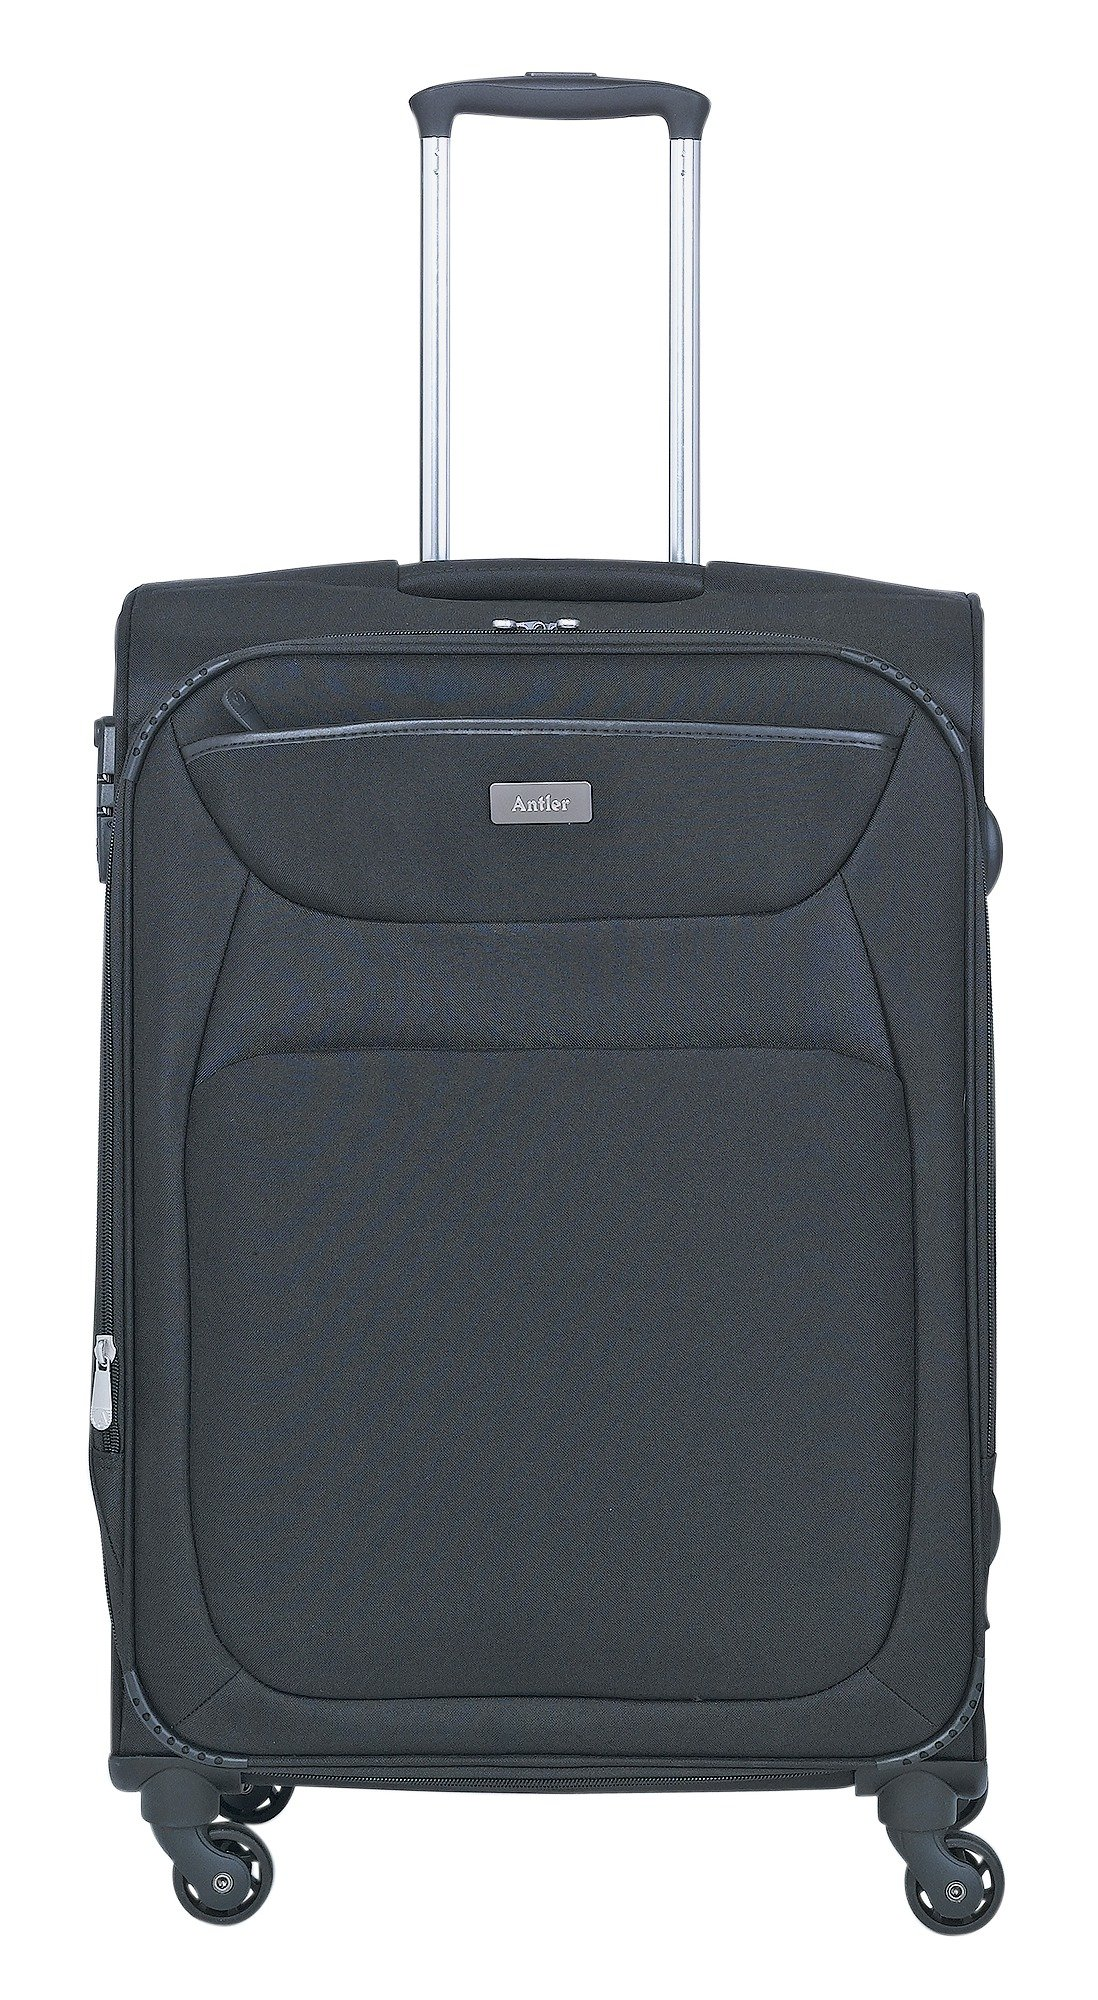 Image of Antler Savanna Medium 4 Wheel Suitcase - Black